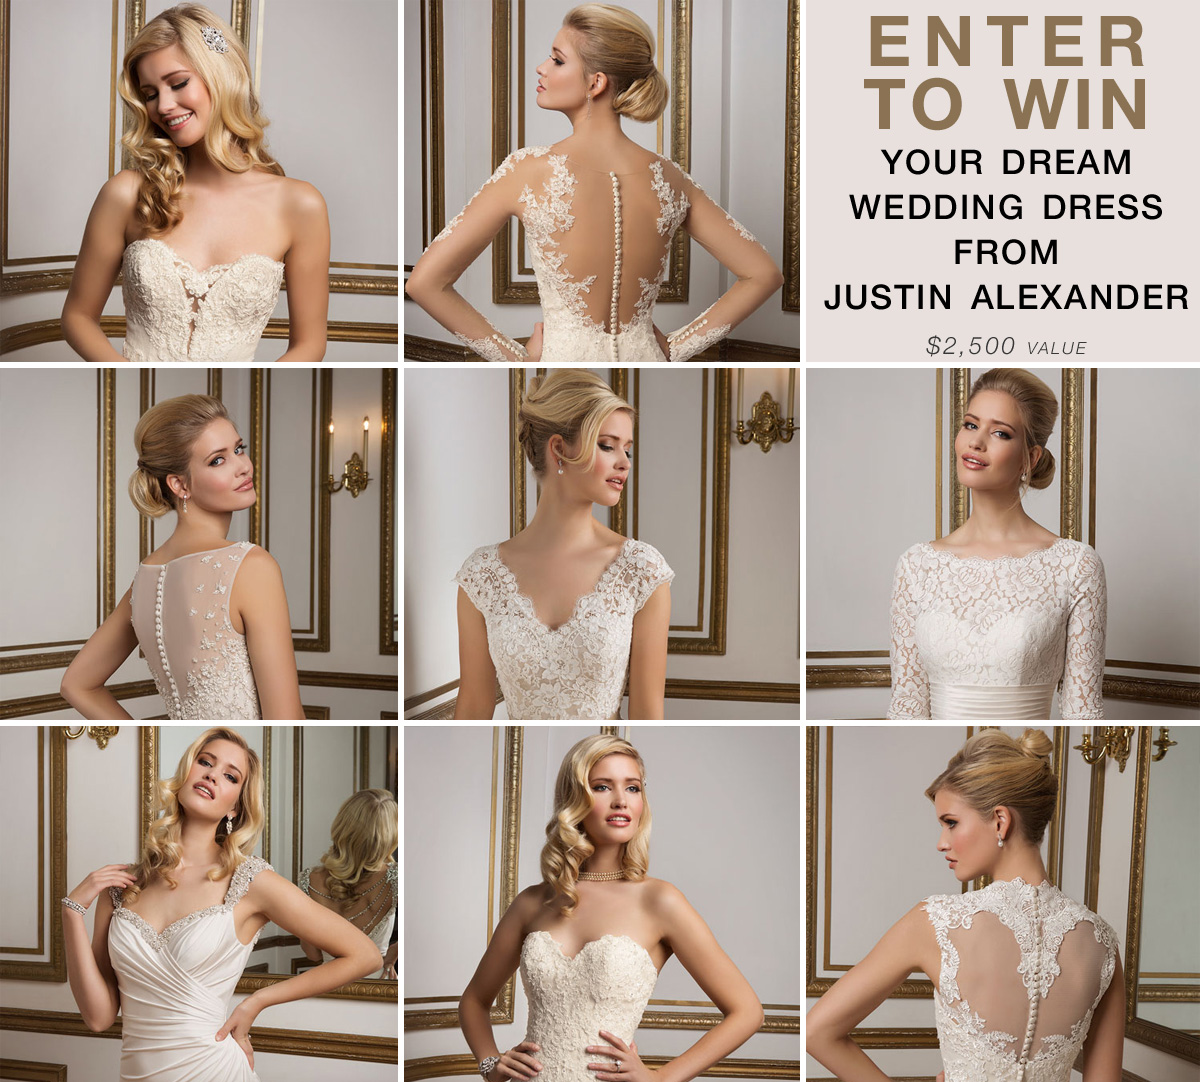 Win Your Dream #WeddingDress from Justin Alexander {valued at $2,500}